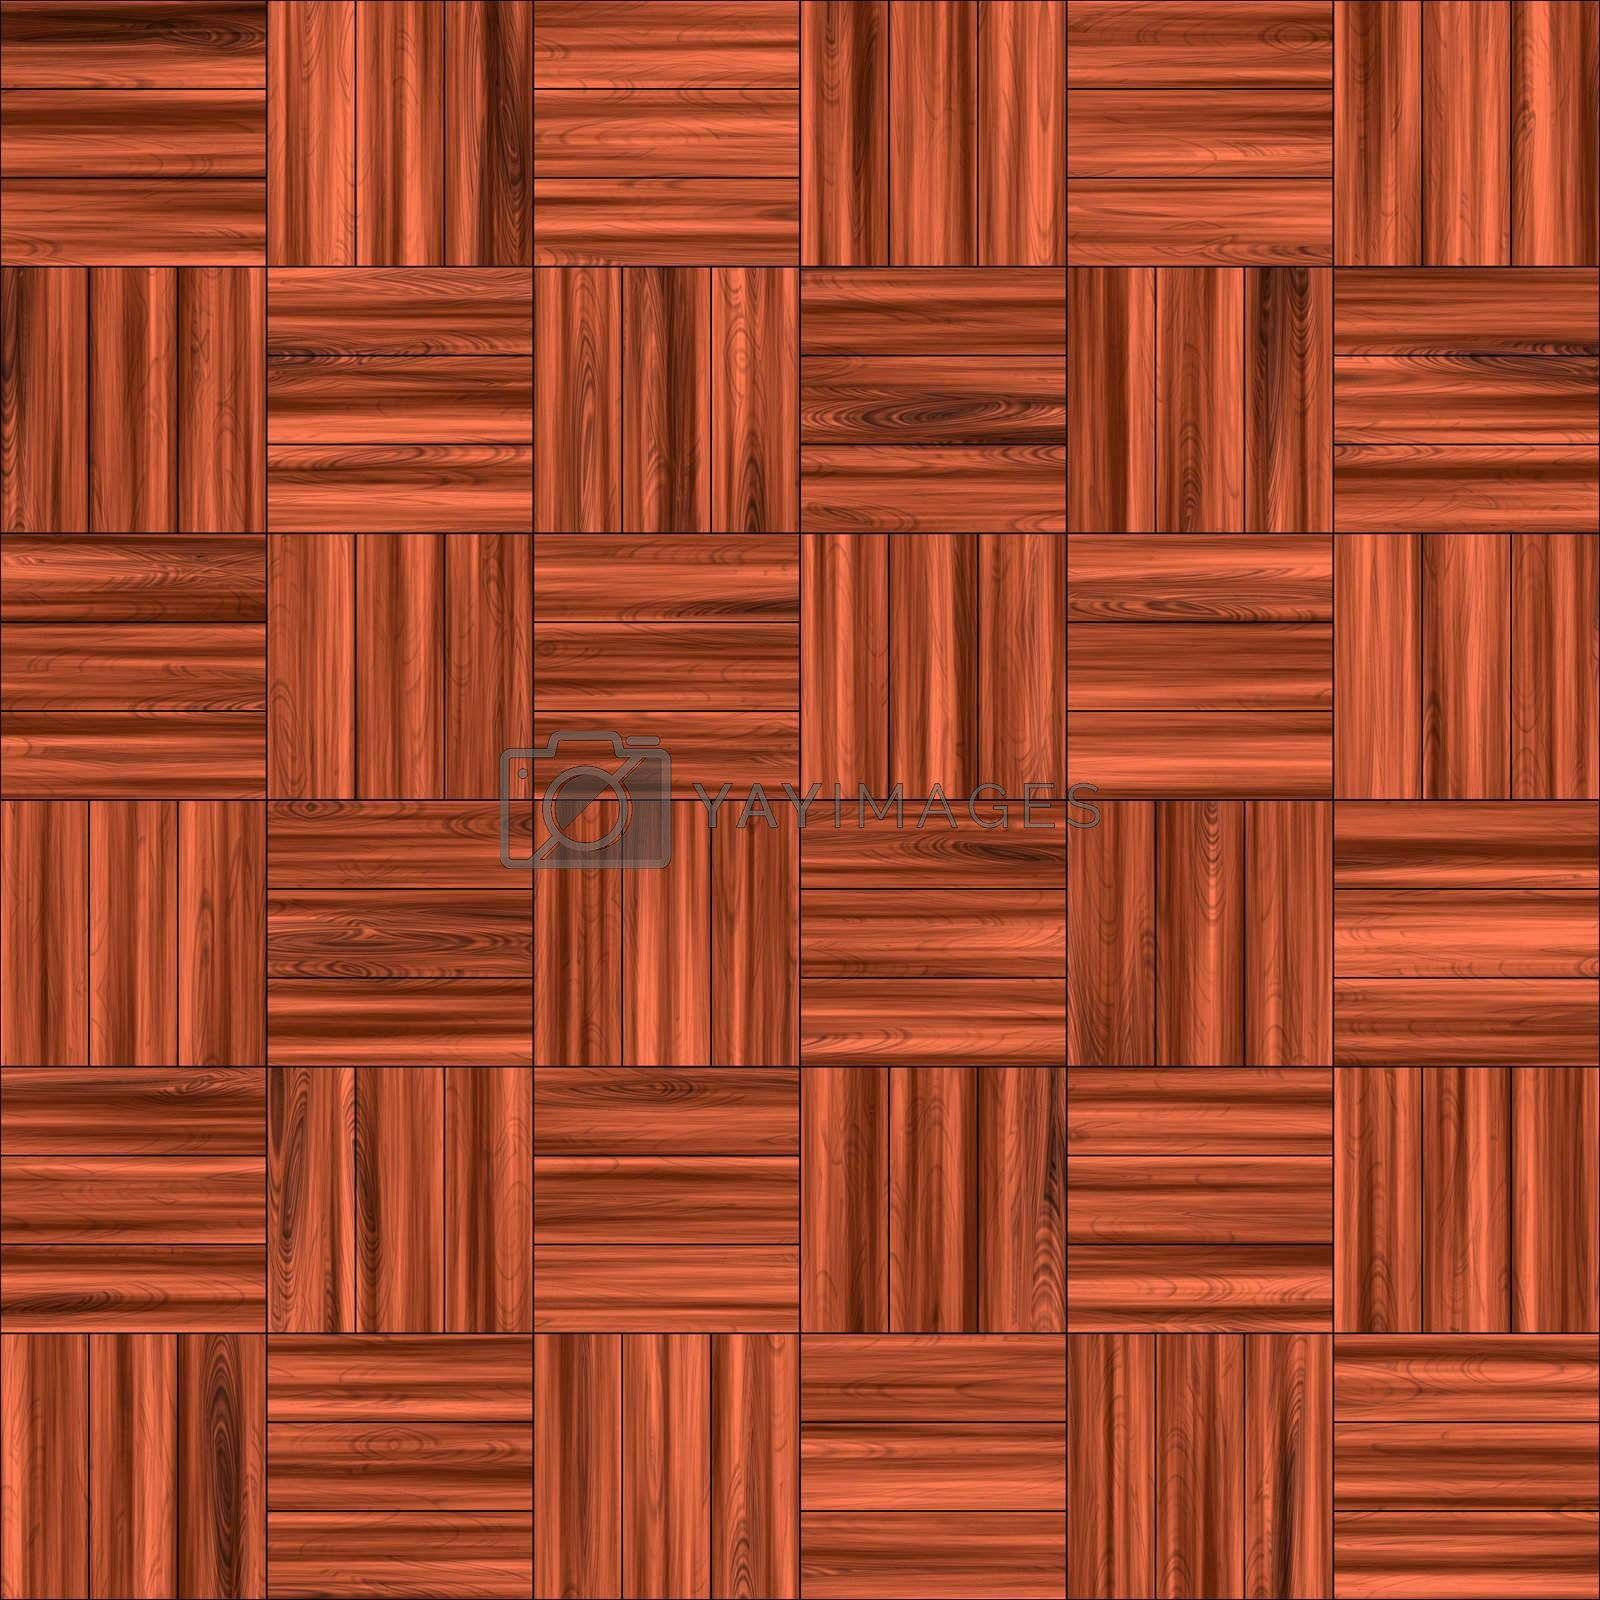 A wooden parquet floor pattern tiles seamlessly as a background.